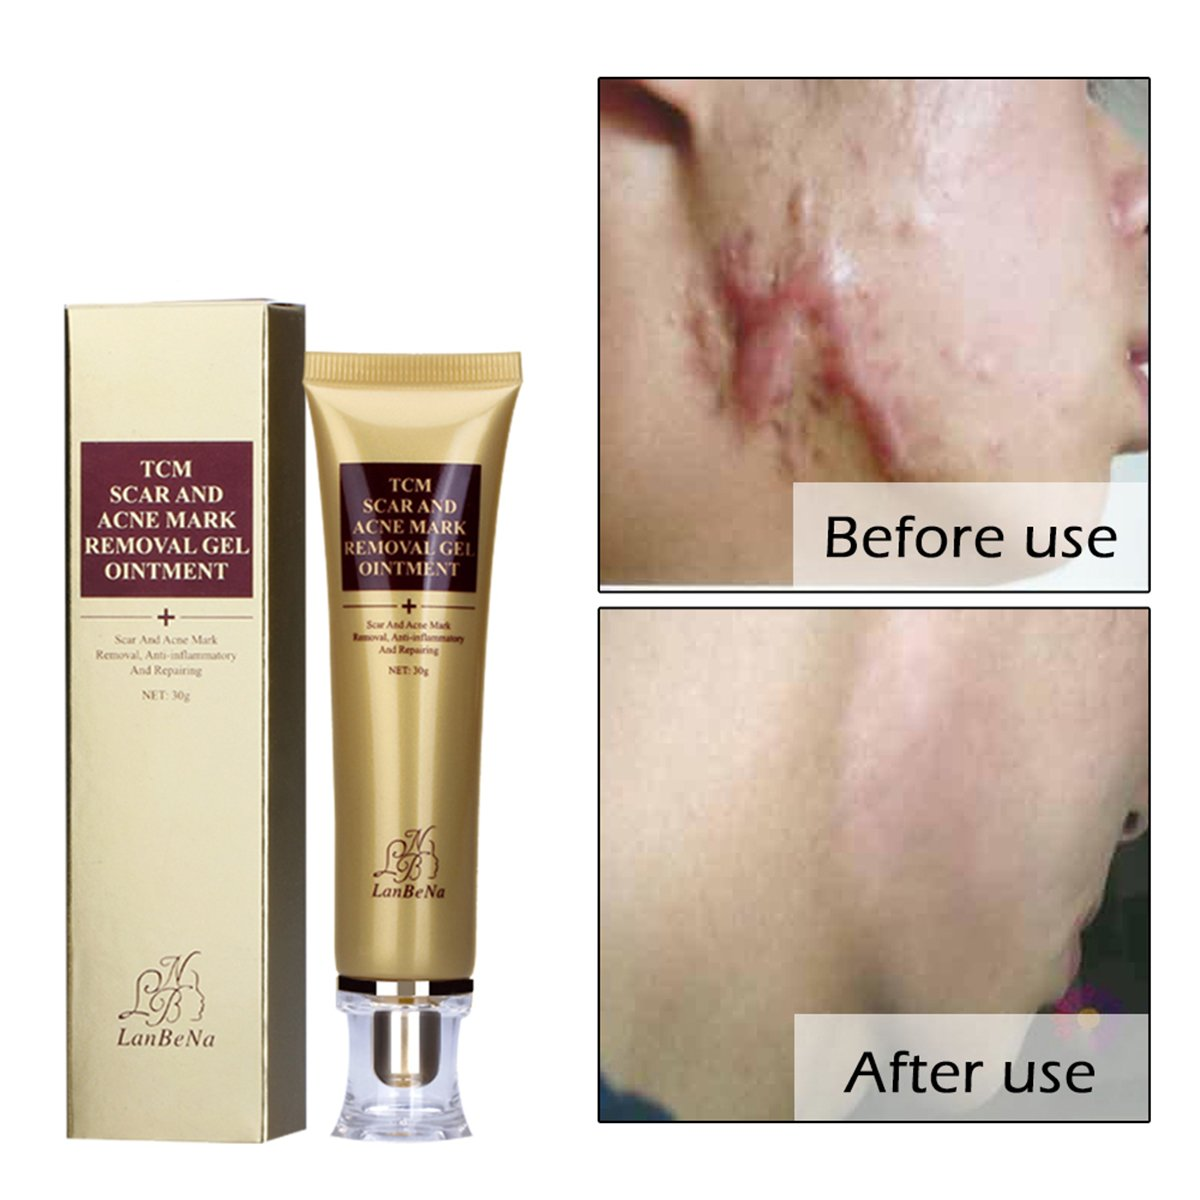 Amareu Acne Scar Removal Cream Skin Repair Face Cream For Burns Cuts Operation Stretch Mark Remover Acne Scars Treatment